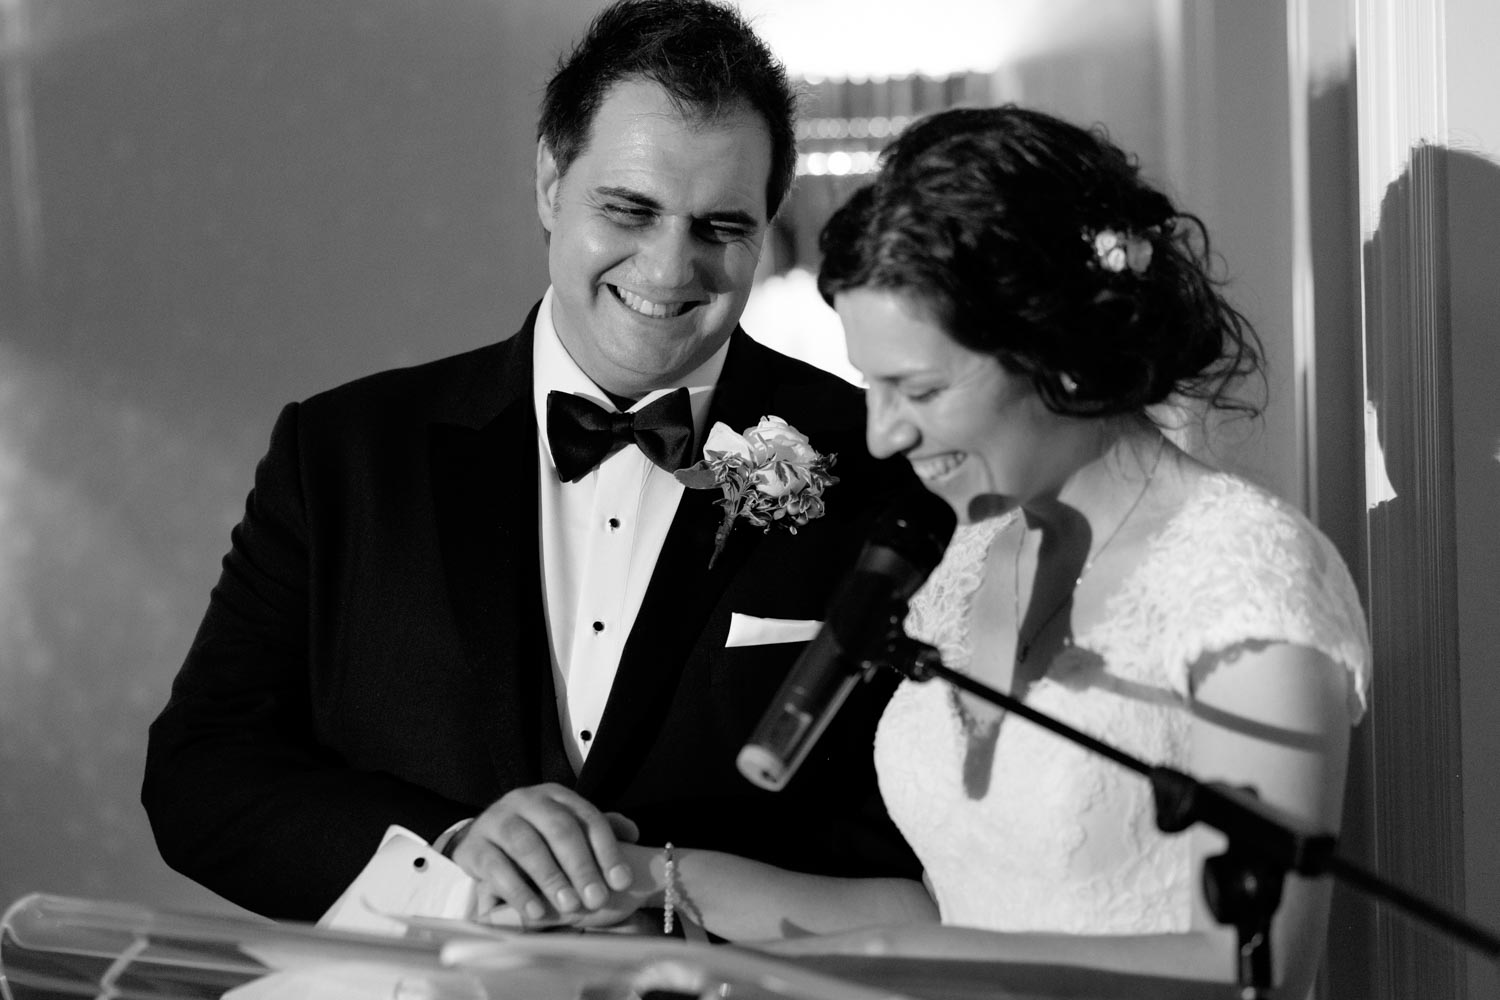 the newlywed couple gives a speech during their wedding reception at Graydon Hall in Toronto.